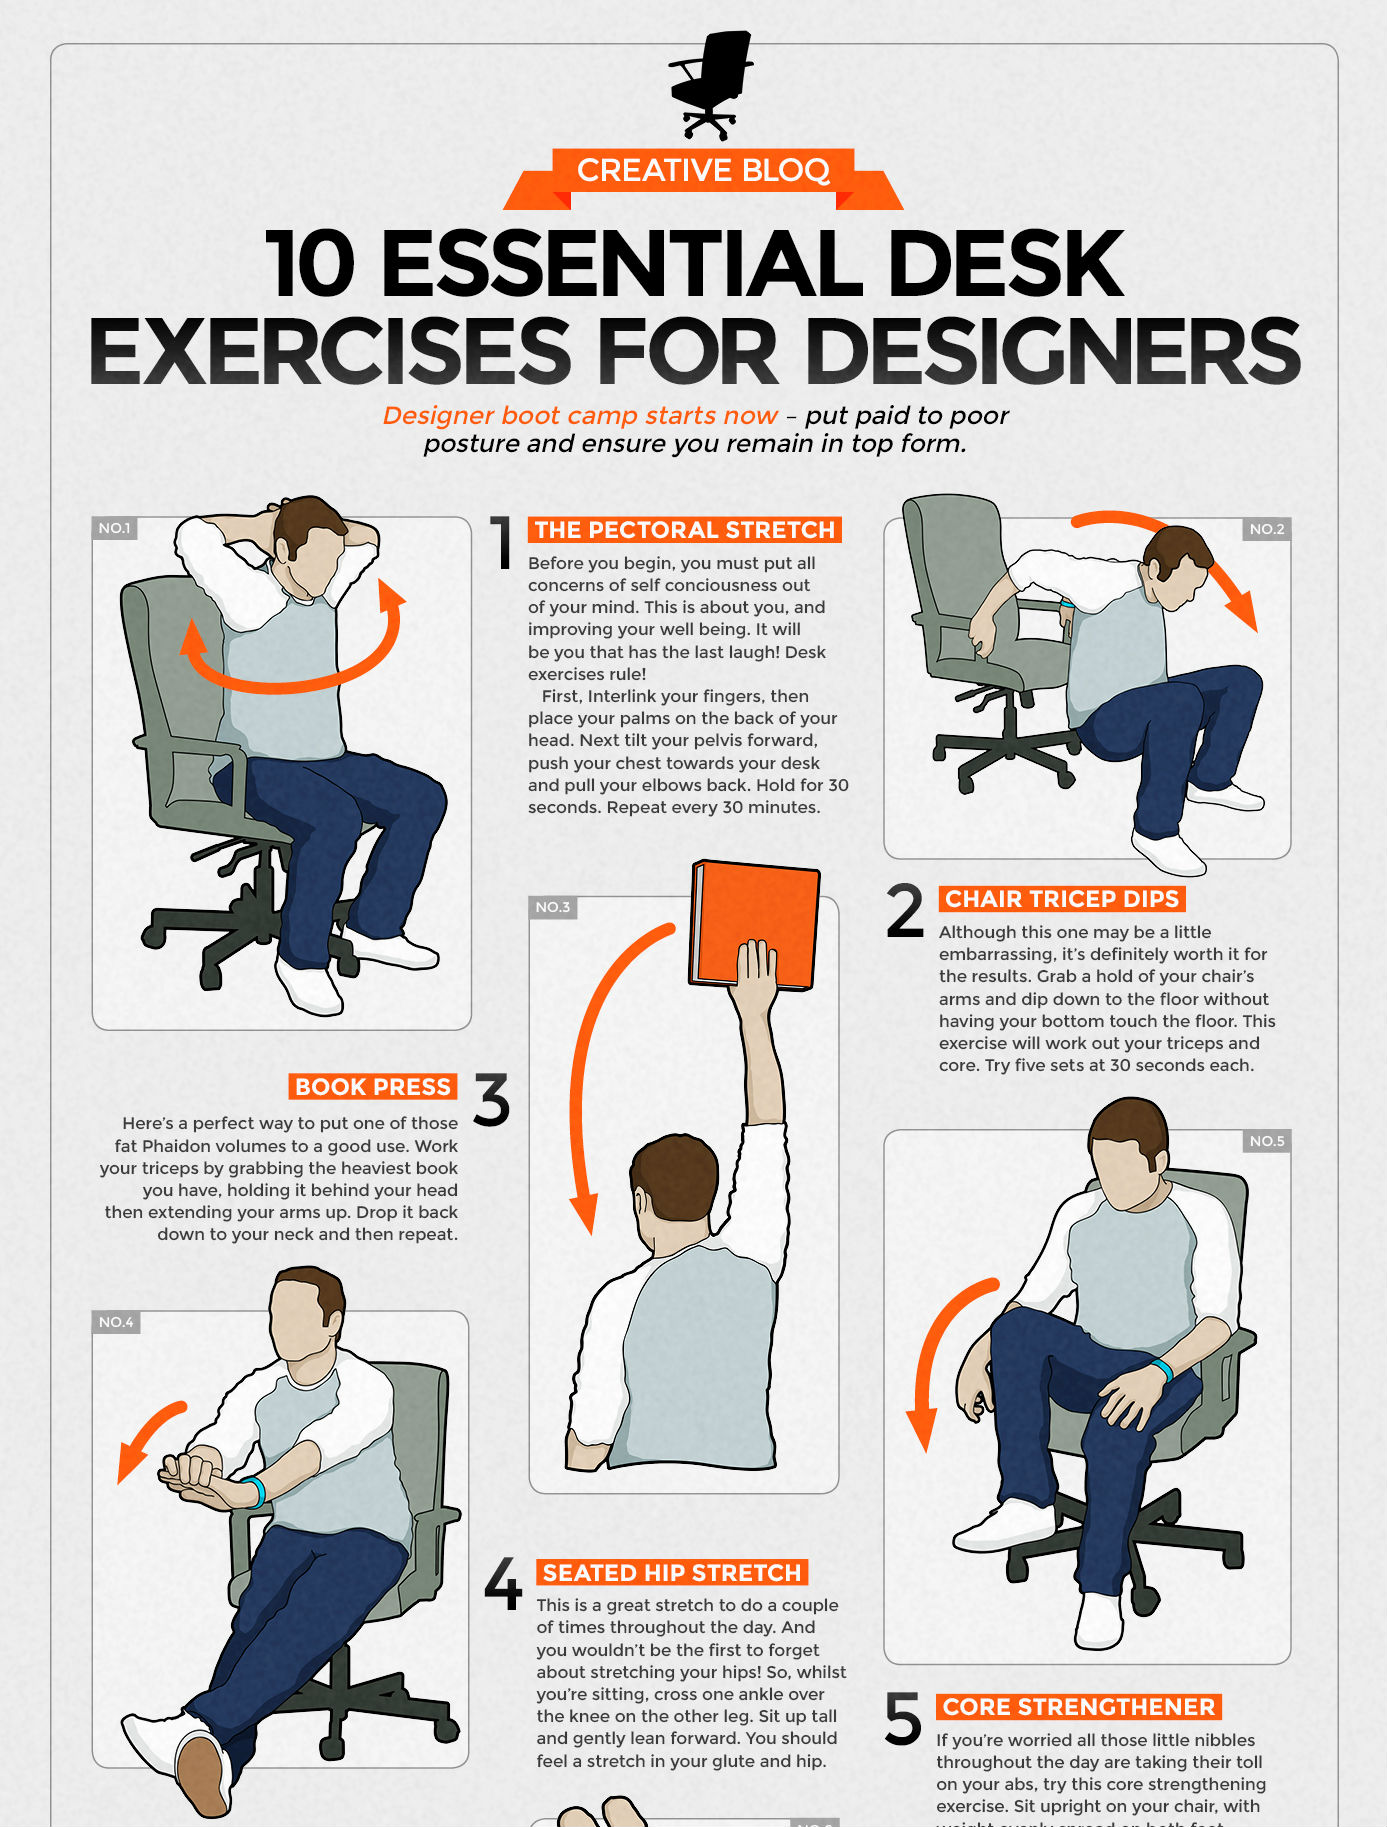 Image shows 10 illustrated exercises for designers, including stretches and core strength movements